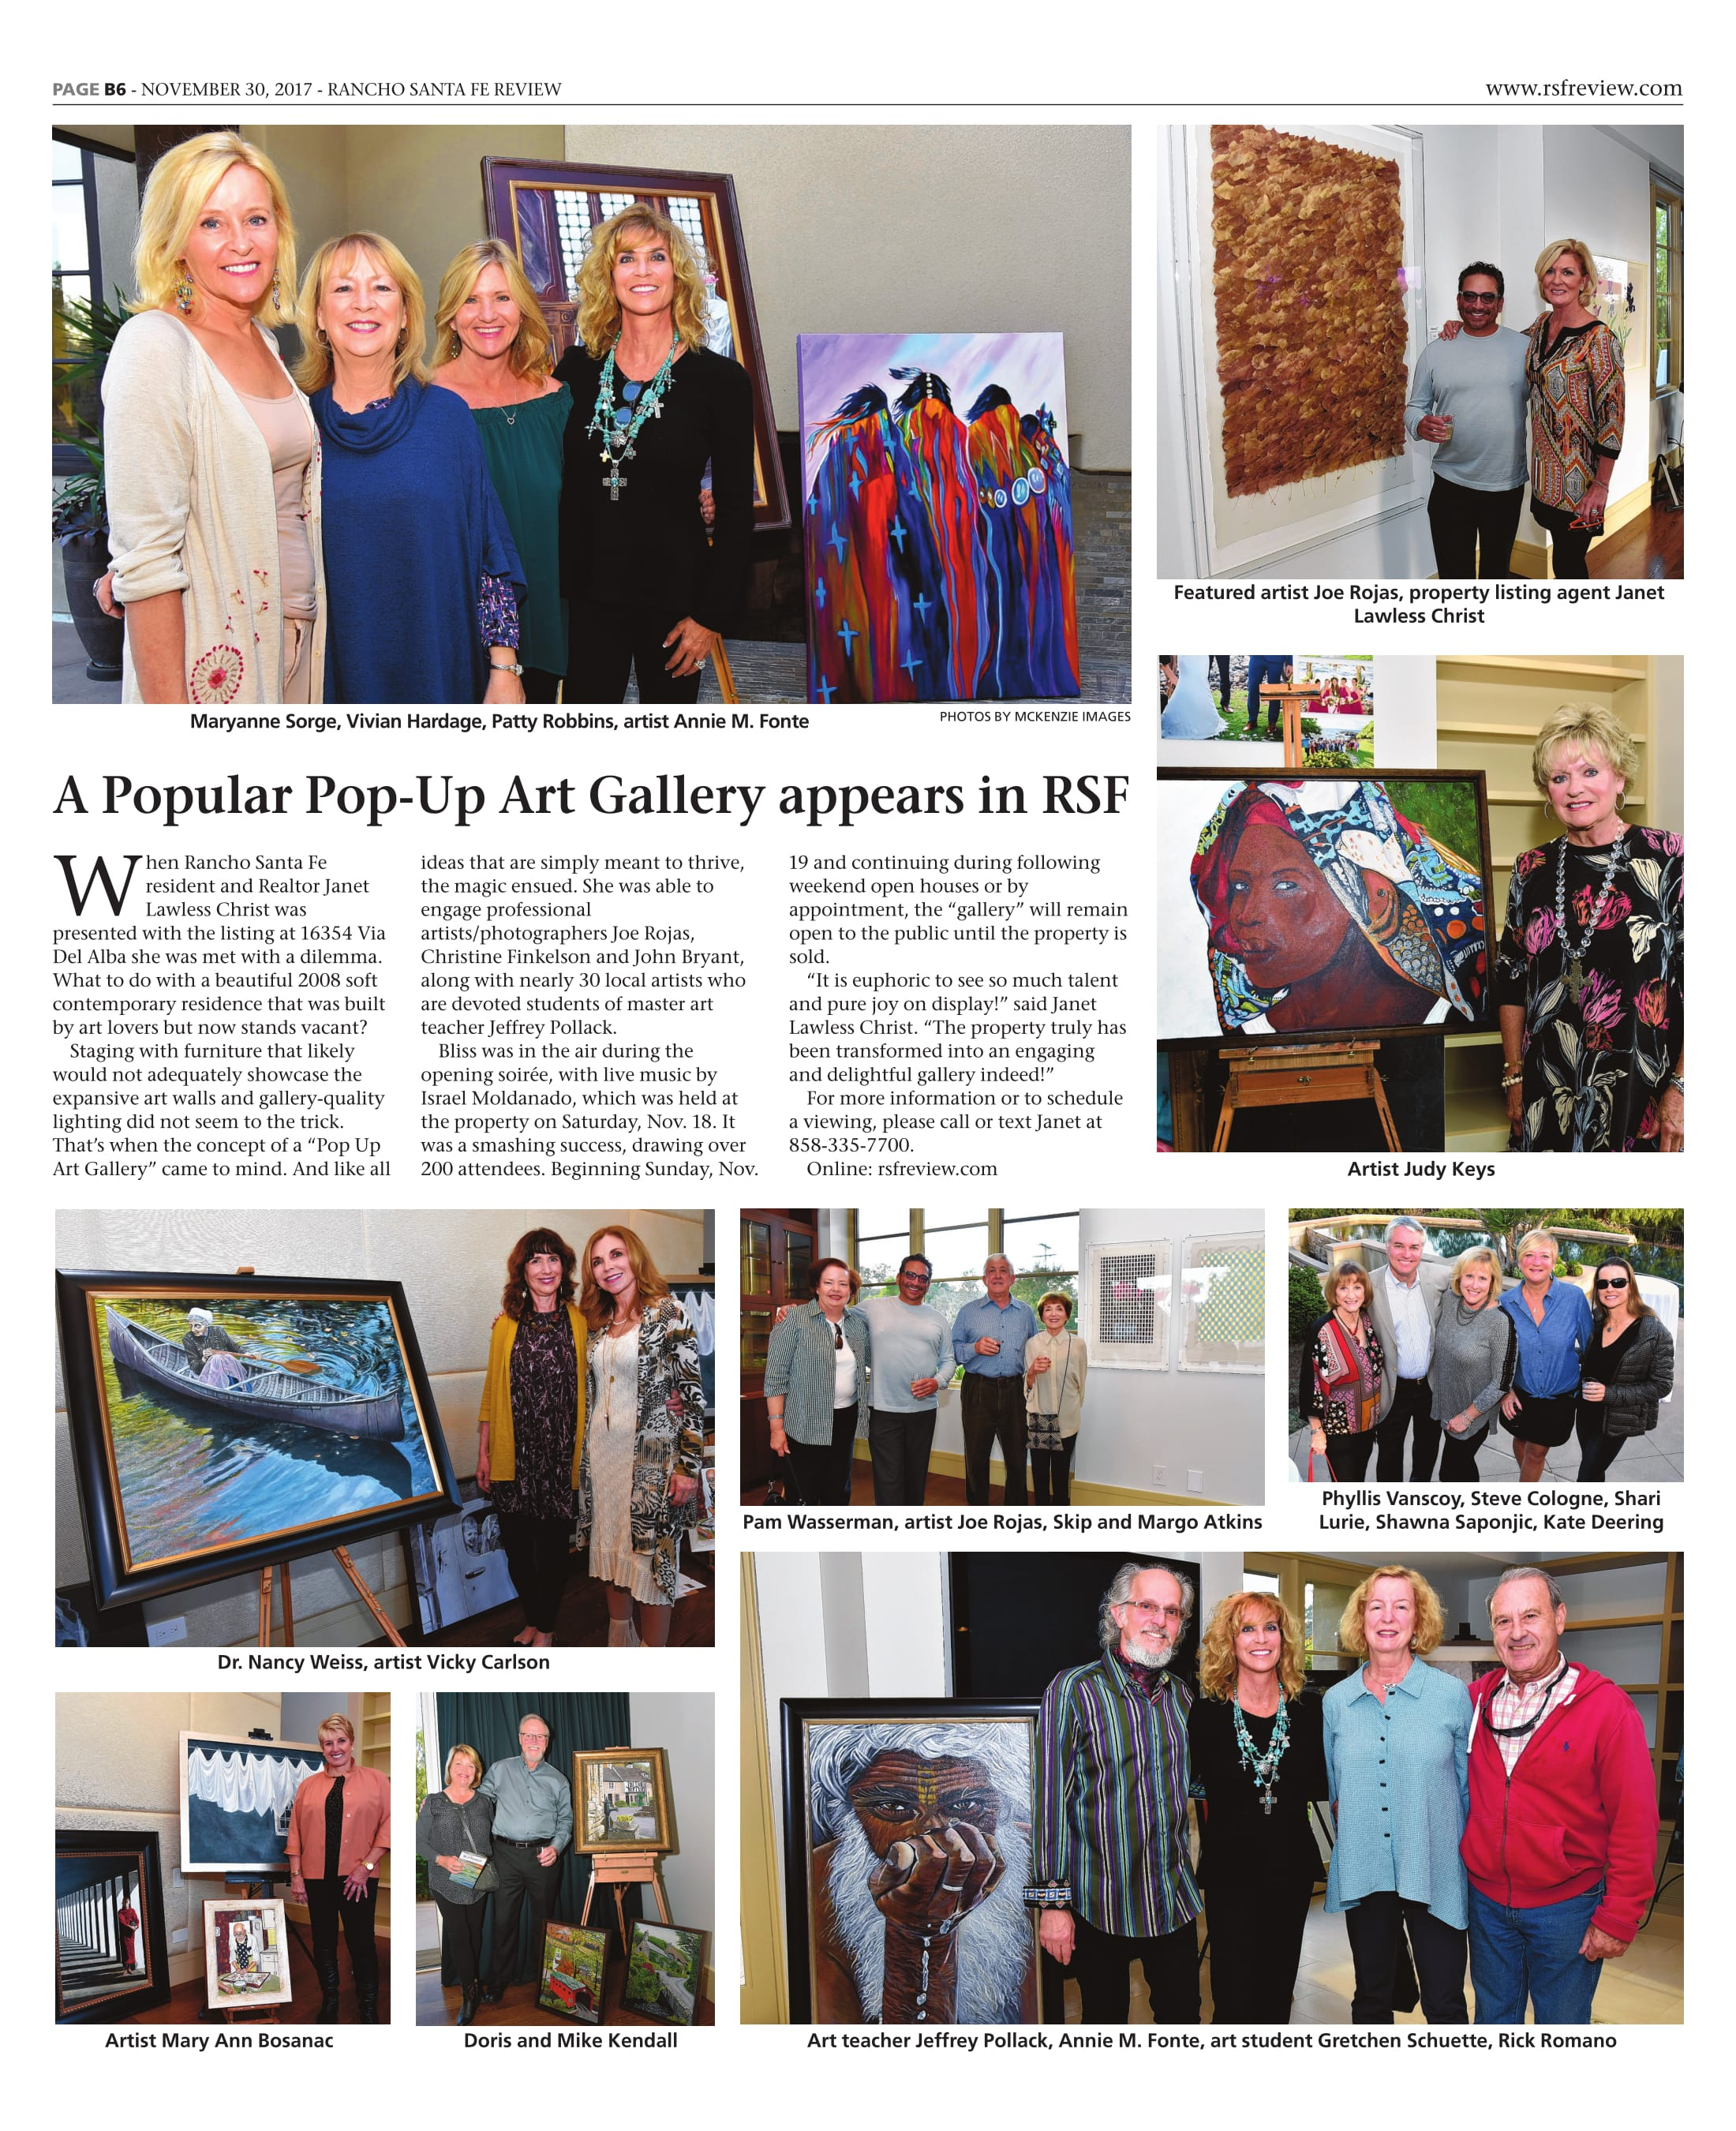 APopular Pop-Up Art Gallery appears in RSF